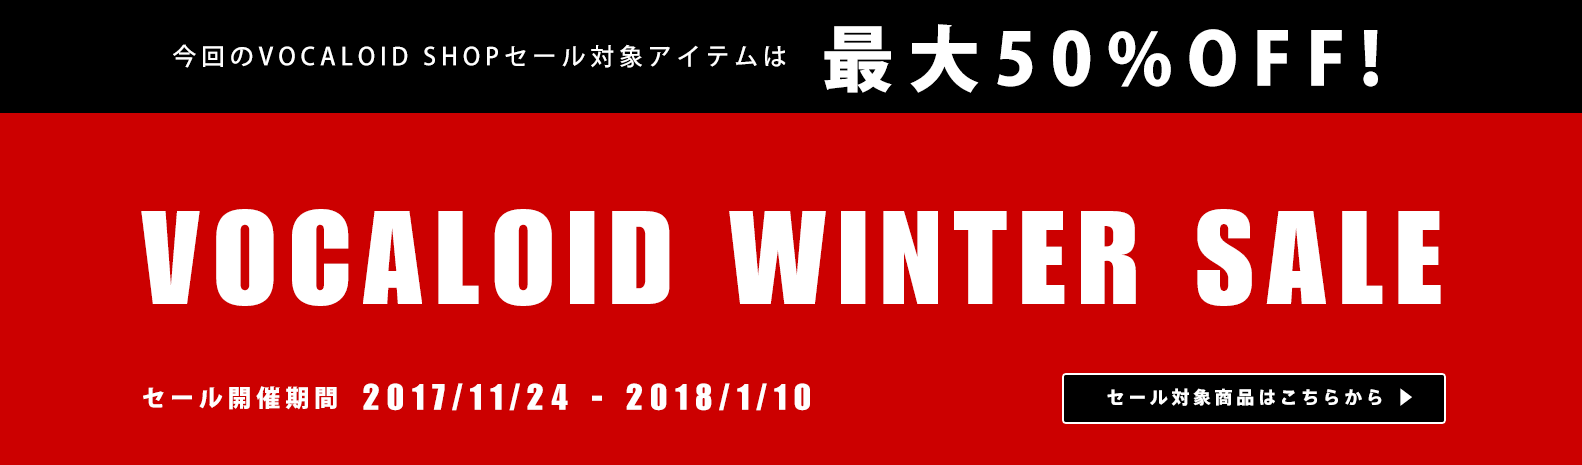 VOCALOID WINTER SALE開催中!